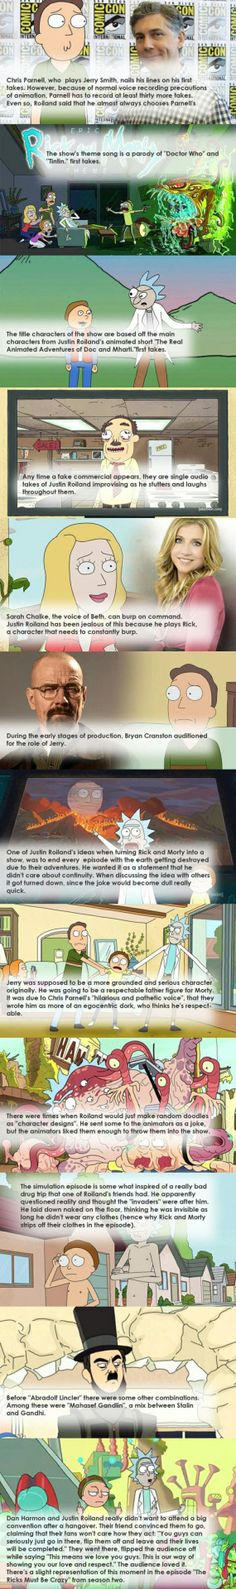 Fun facts about Rick and Morty #lol #funny #rofl #memes #lmao #hilarious #cute